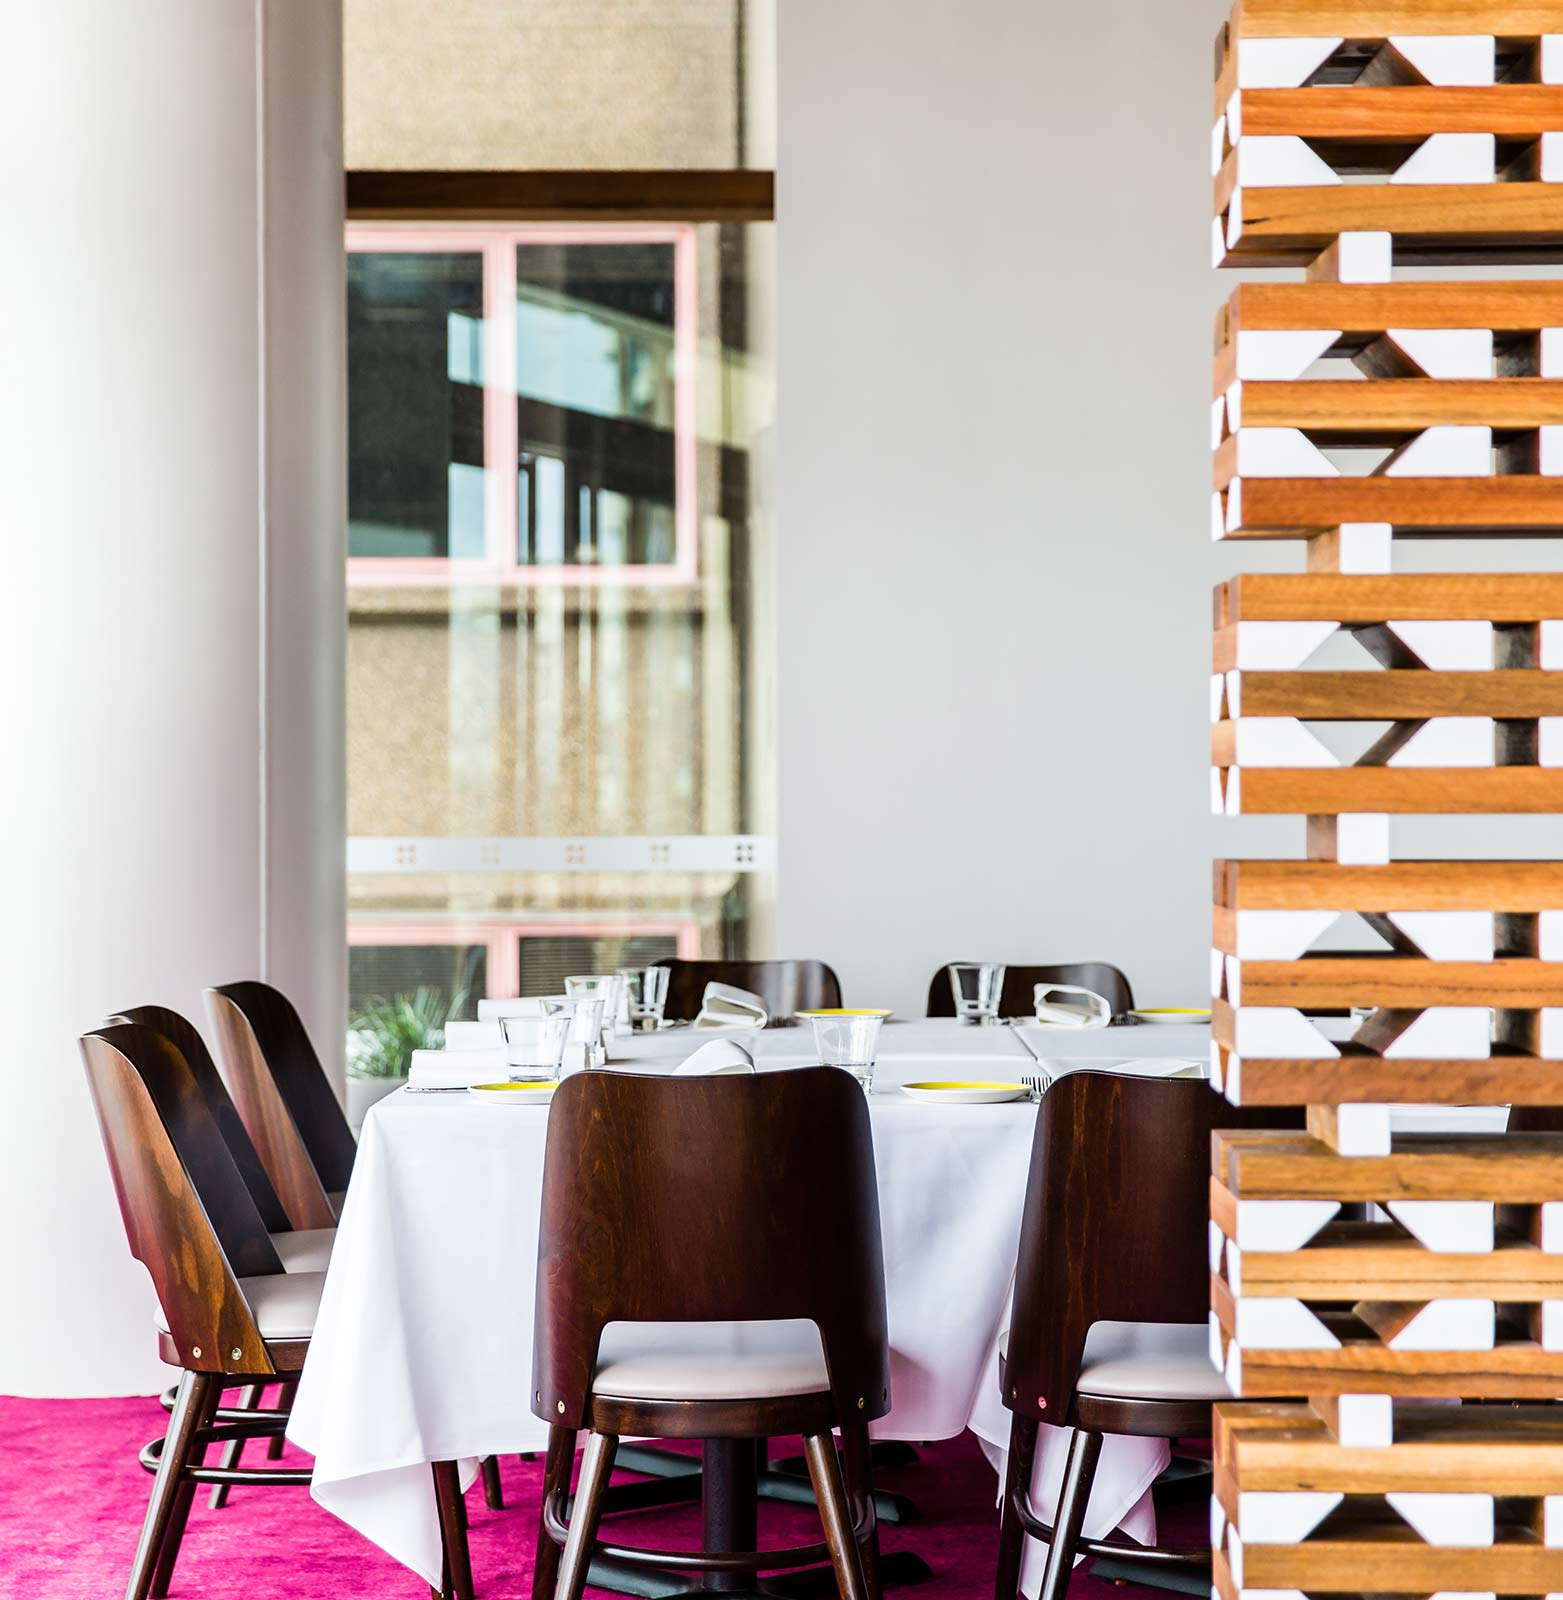 function of dining room | Functions at OTTO - Weddings, Private Events, Parties ...